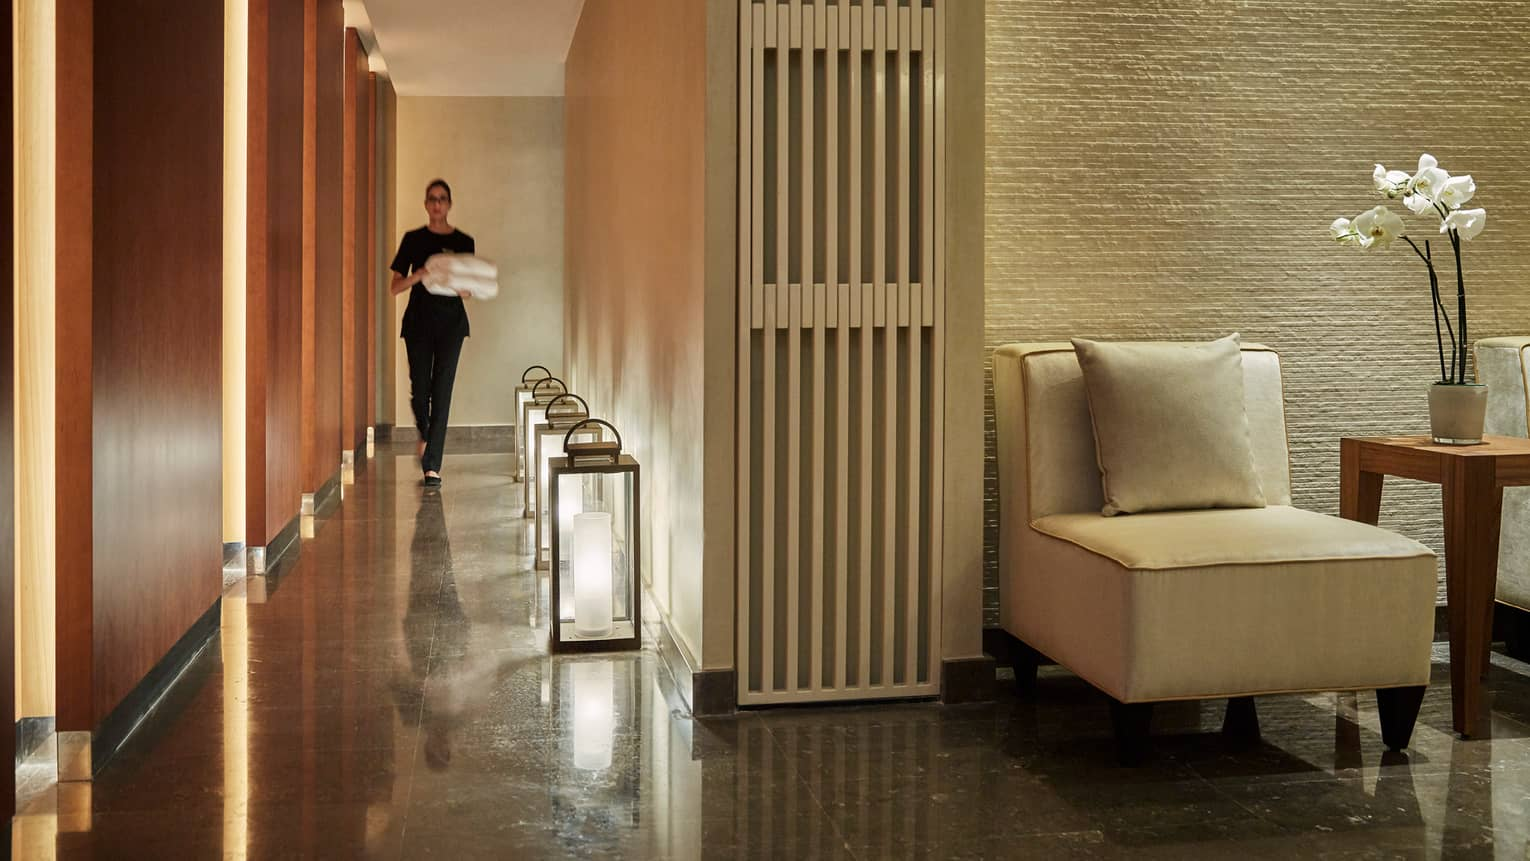 Woman carrying folded white towels walks down Le Spa hall past large lanterns along floor